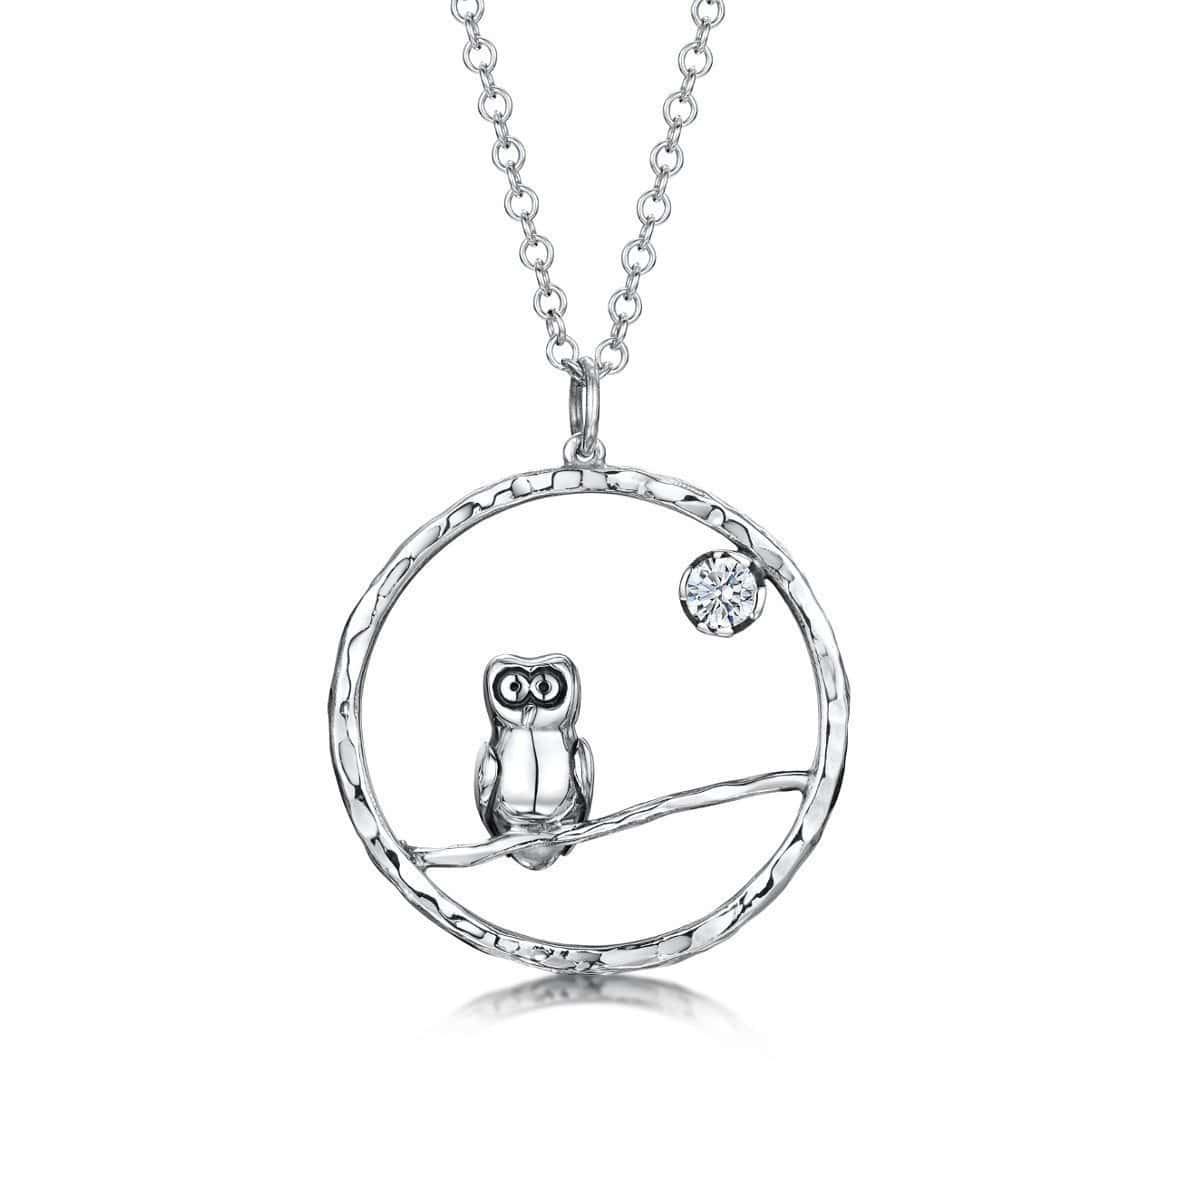 Sterling Silver & Cubic Zirconia Owly Charm